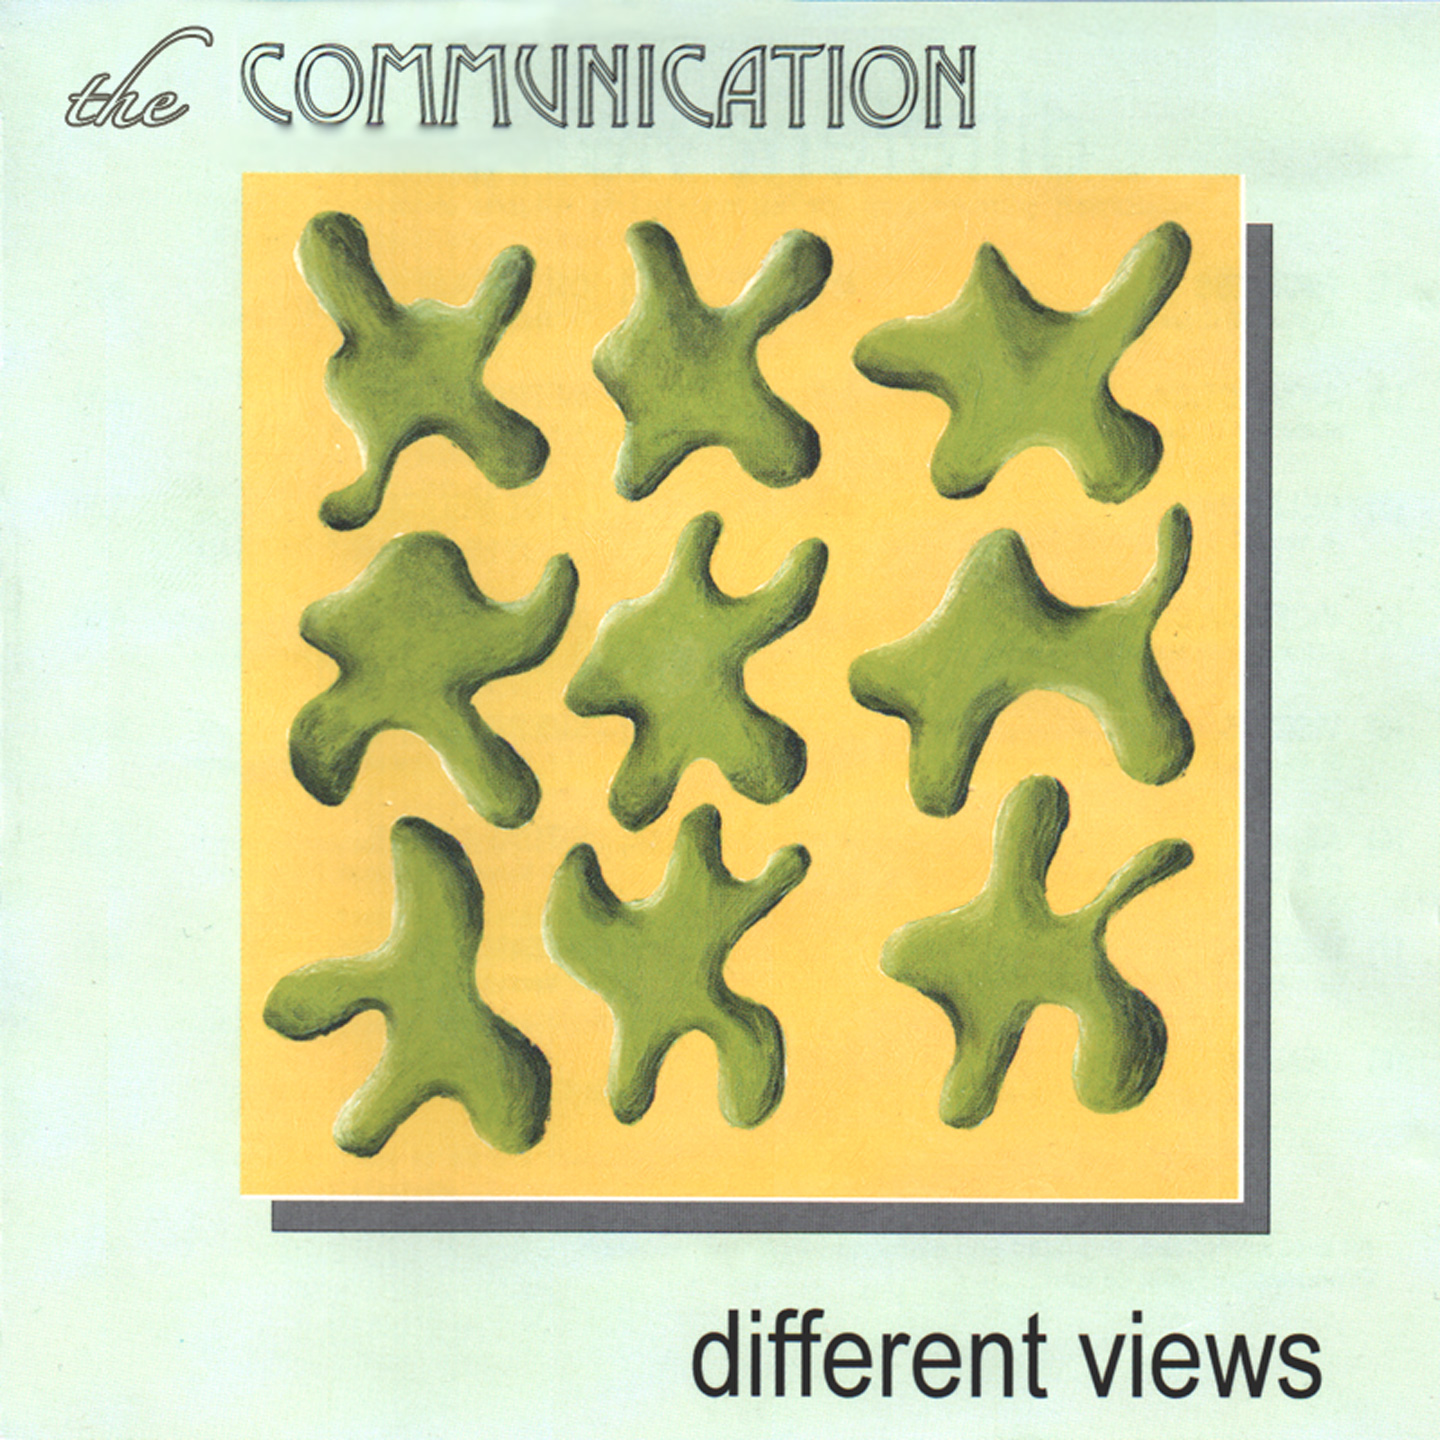 The Communications - Different view